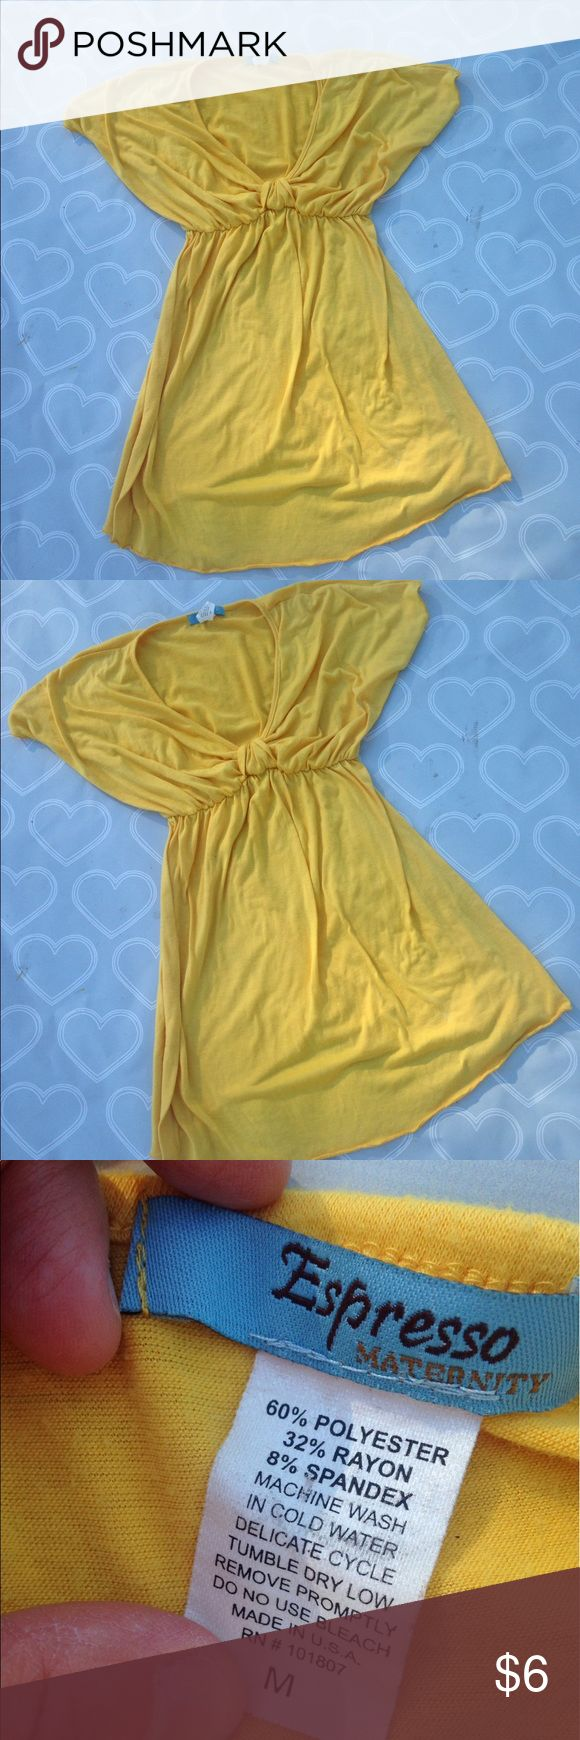 """Women's maternity shirt size medium Brand- Expresso Maternity--Women's yellow shirt size medium. GUC- it's so hard to find normal clothes and dress """"cute"""" while pregnant- I loved this shirt because it looks and fits like normal clothes but allow room for that baby bump 😘 Expresso Maternity  Tops"""